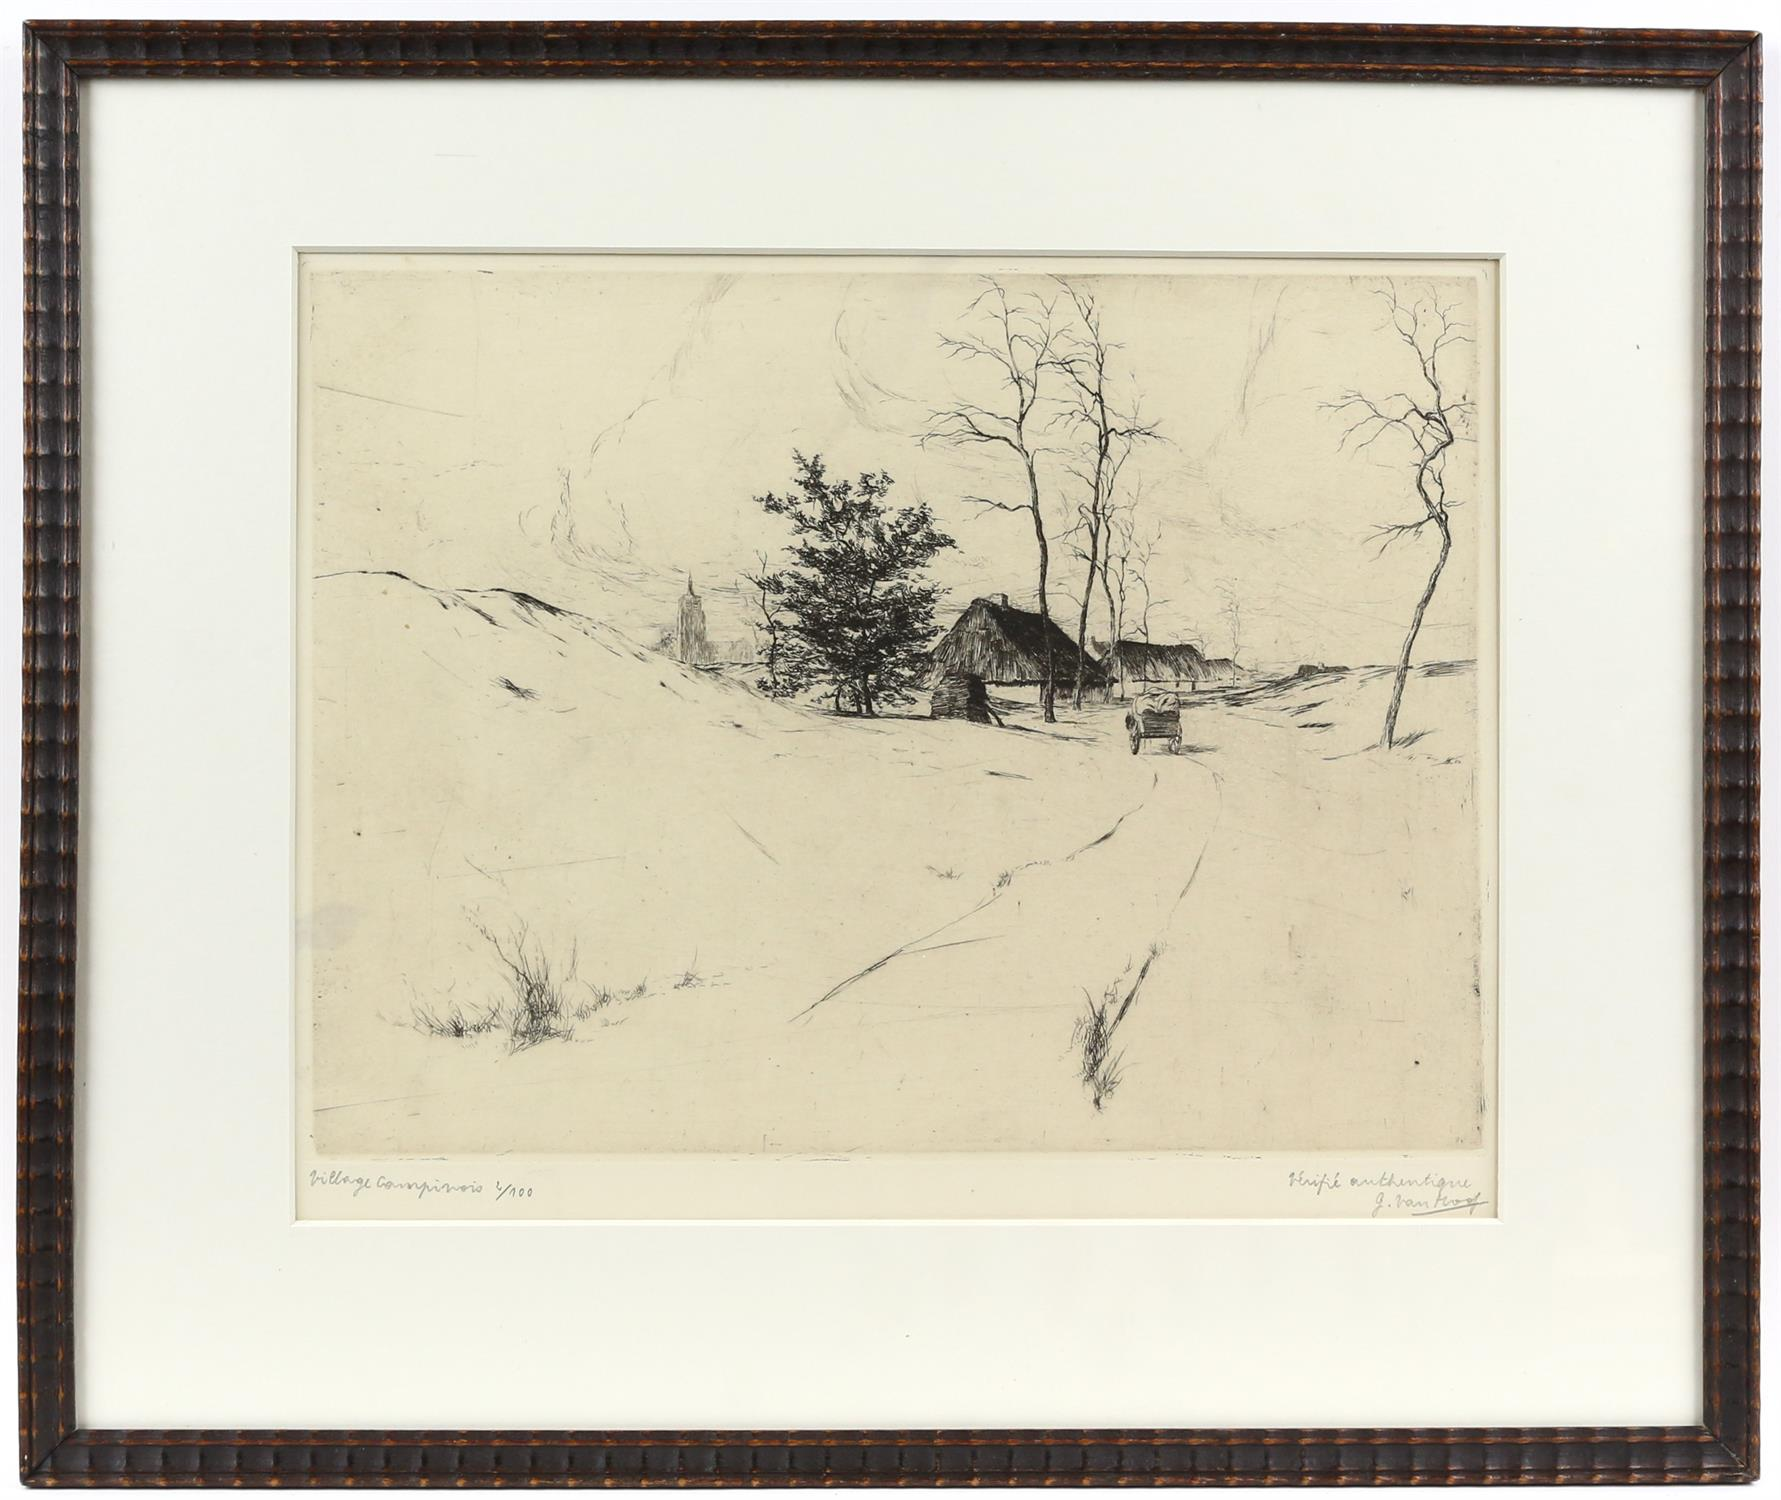 Jos van Hoof (Belgian, 1889-1937). 'Village Campinois', limited edition etching, signed, - Image 2 of 5